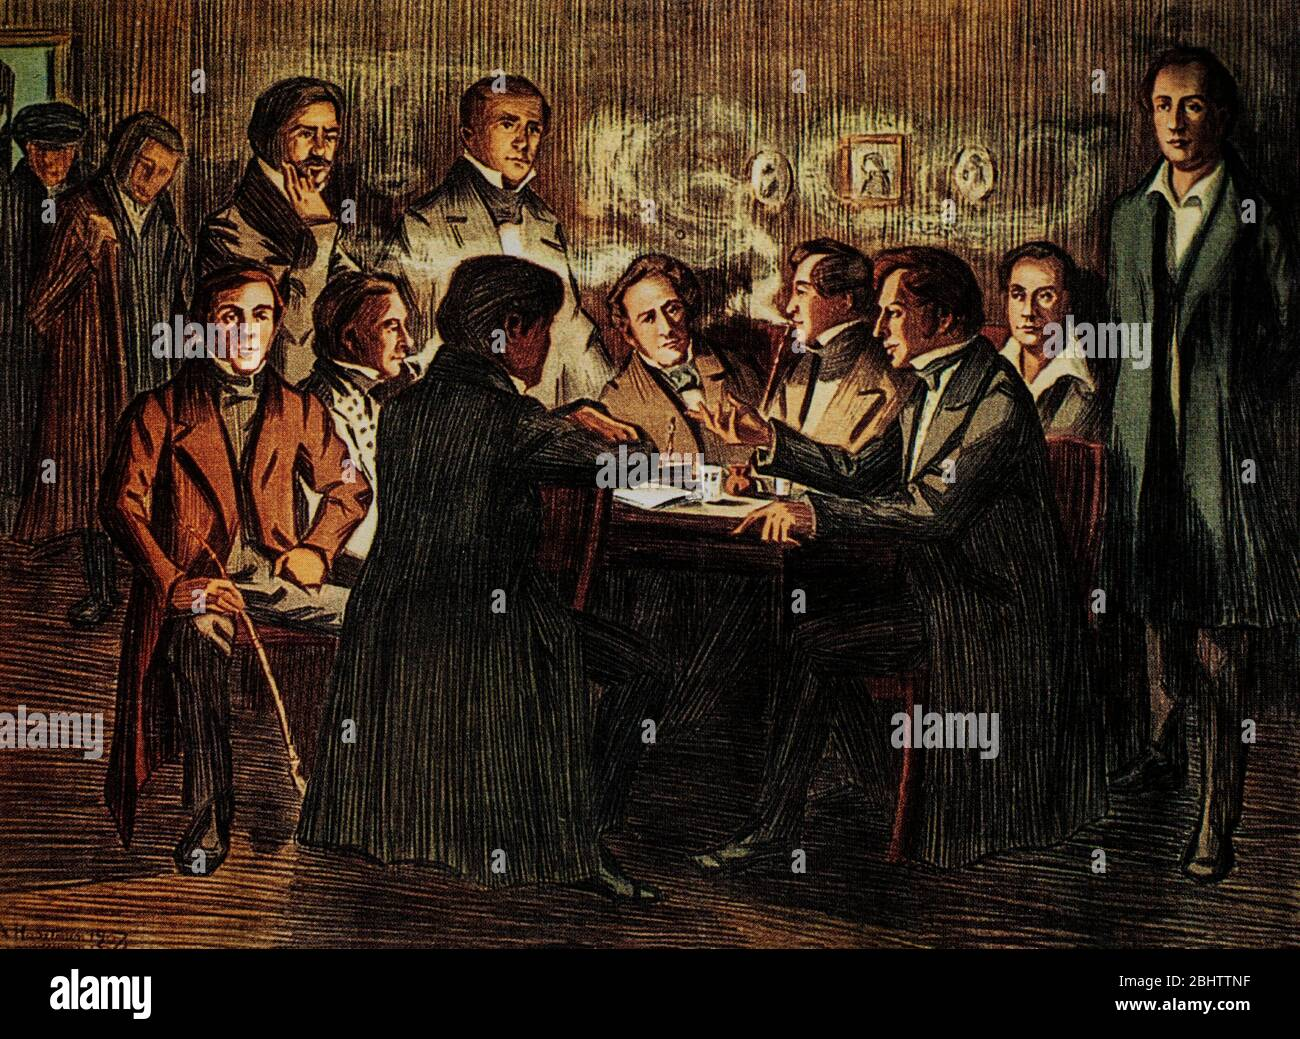 A meeting of the Saturday Society, a society founded by students and young teachers at the University of Helsinki in the spring of 1830, which met on Saturday evenings with one of its members. Literature was bought with common funds and enthusiastic discussions about them often dragged on late into the night. Initially, the discussions concerned literature and philosophy, but later the aim became the creation of a national Finland. (Artist unknown, but possibly Albert Edelfelt (1854-1905), a Finnish painter noted for his naturalistic style and Realist approach to art.) Stock Photo